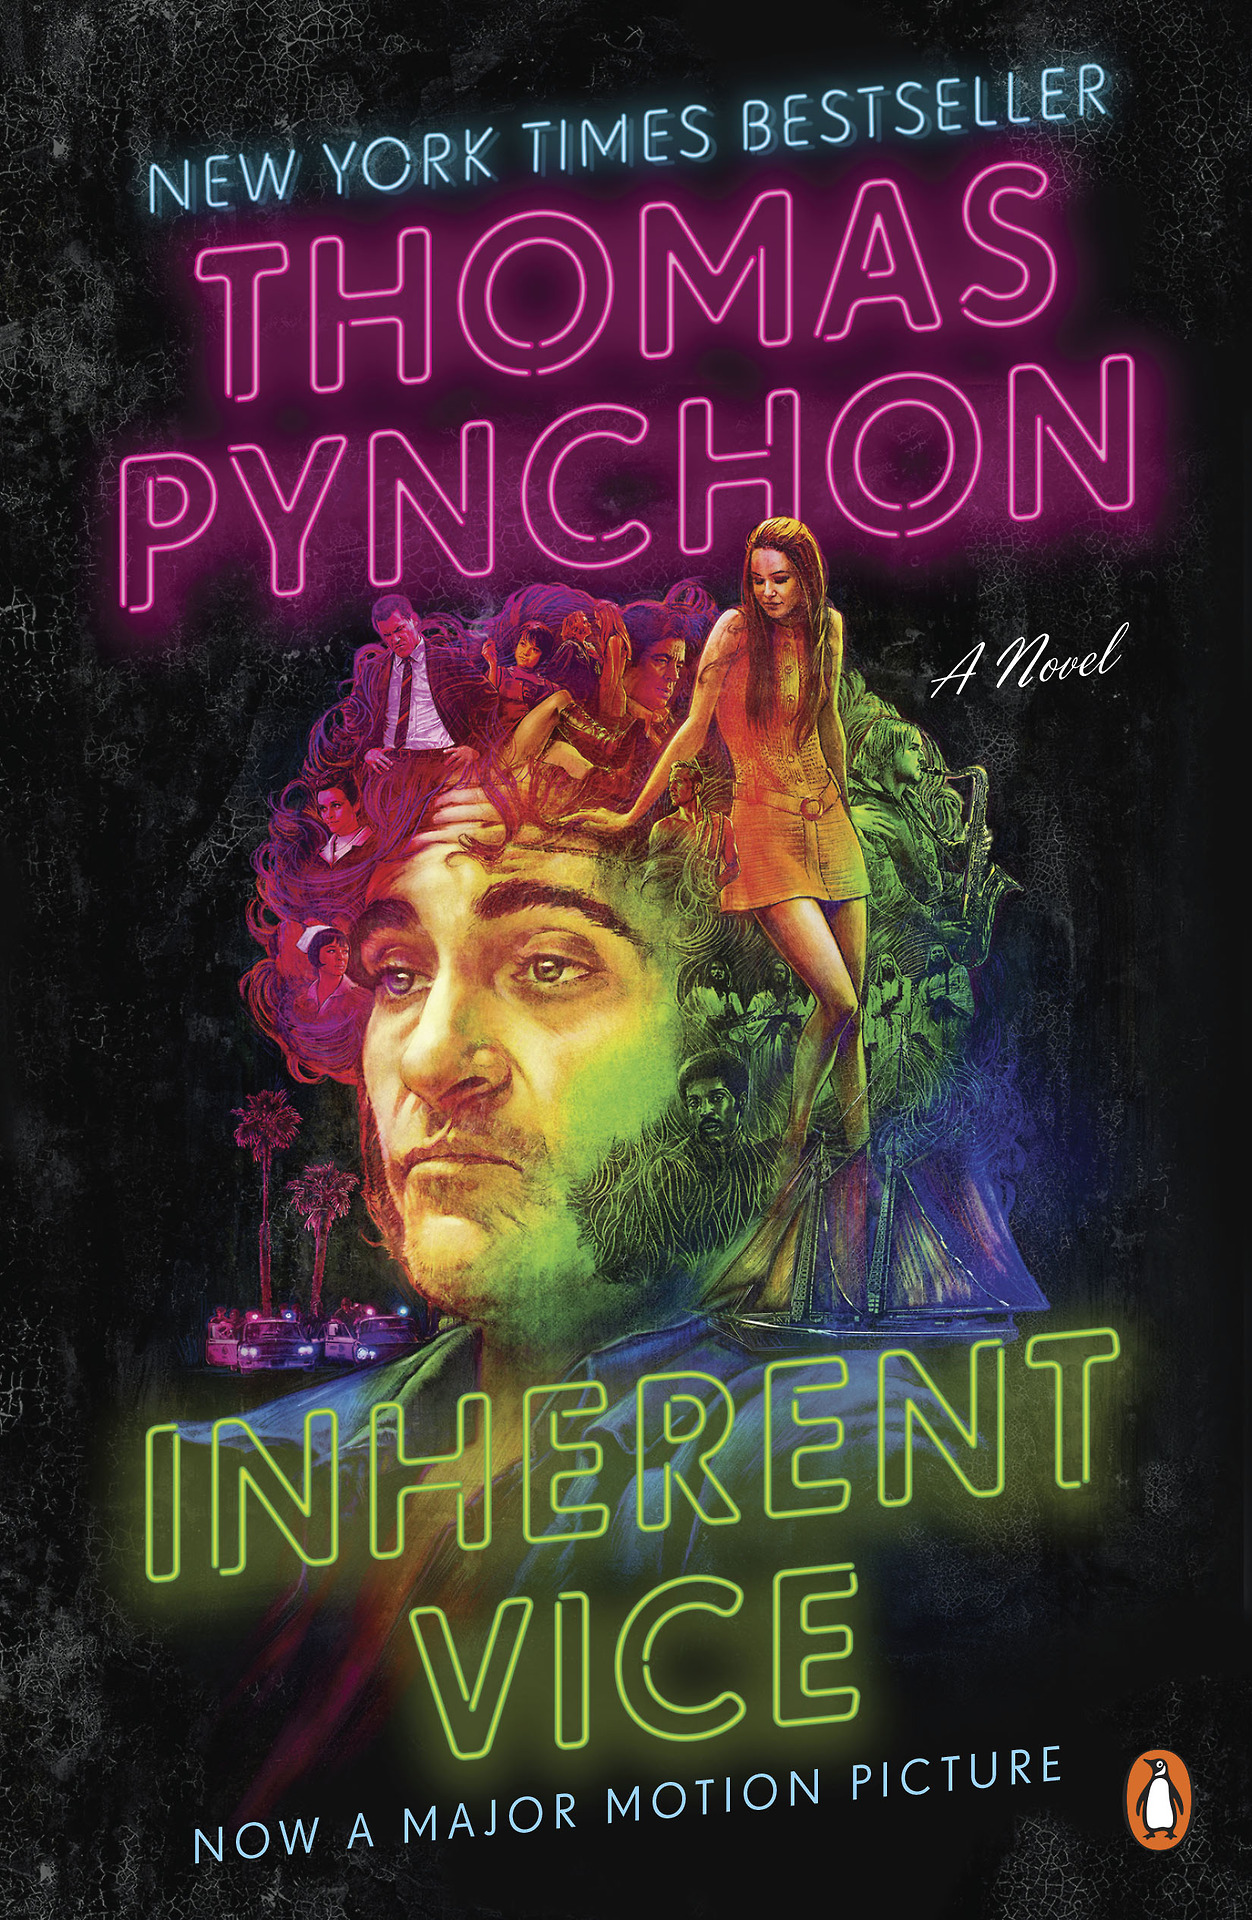 Listen To The 100 Plus Songs From Thomas Pynchon S